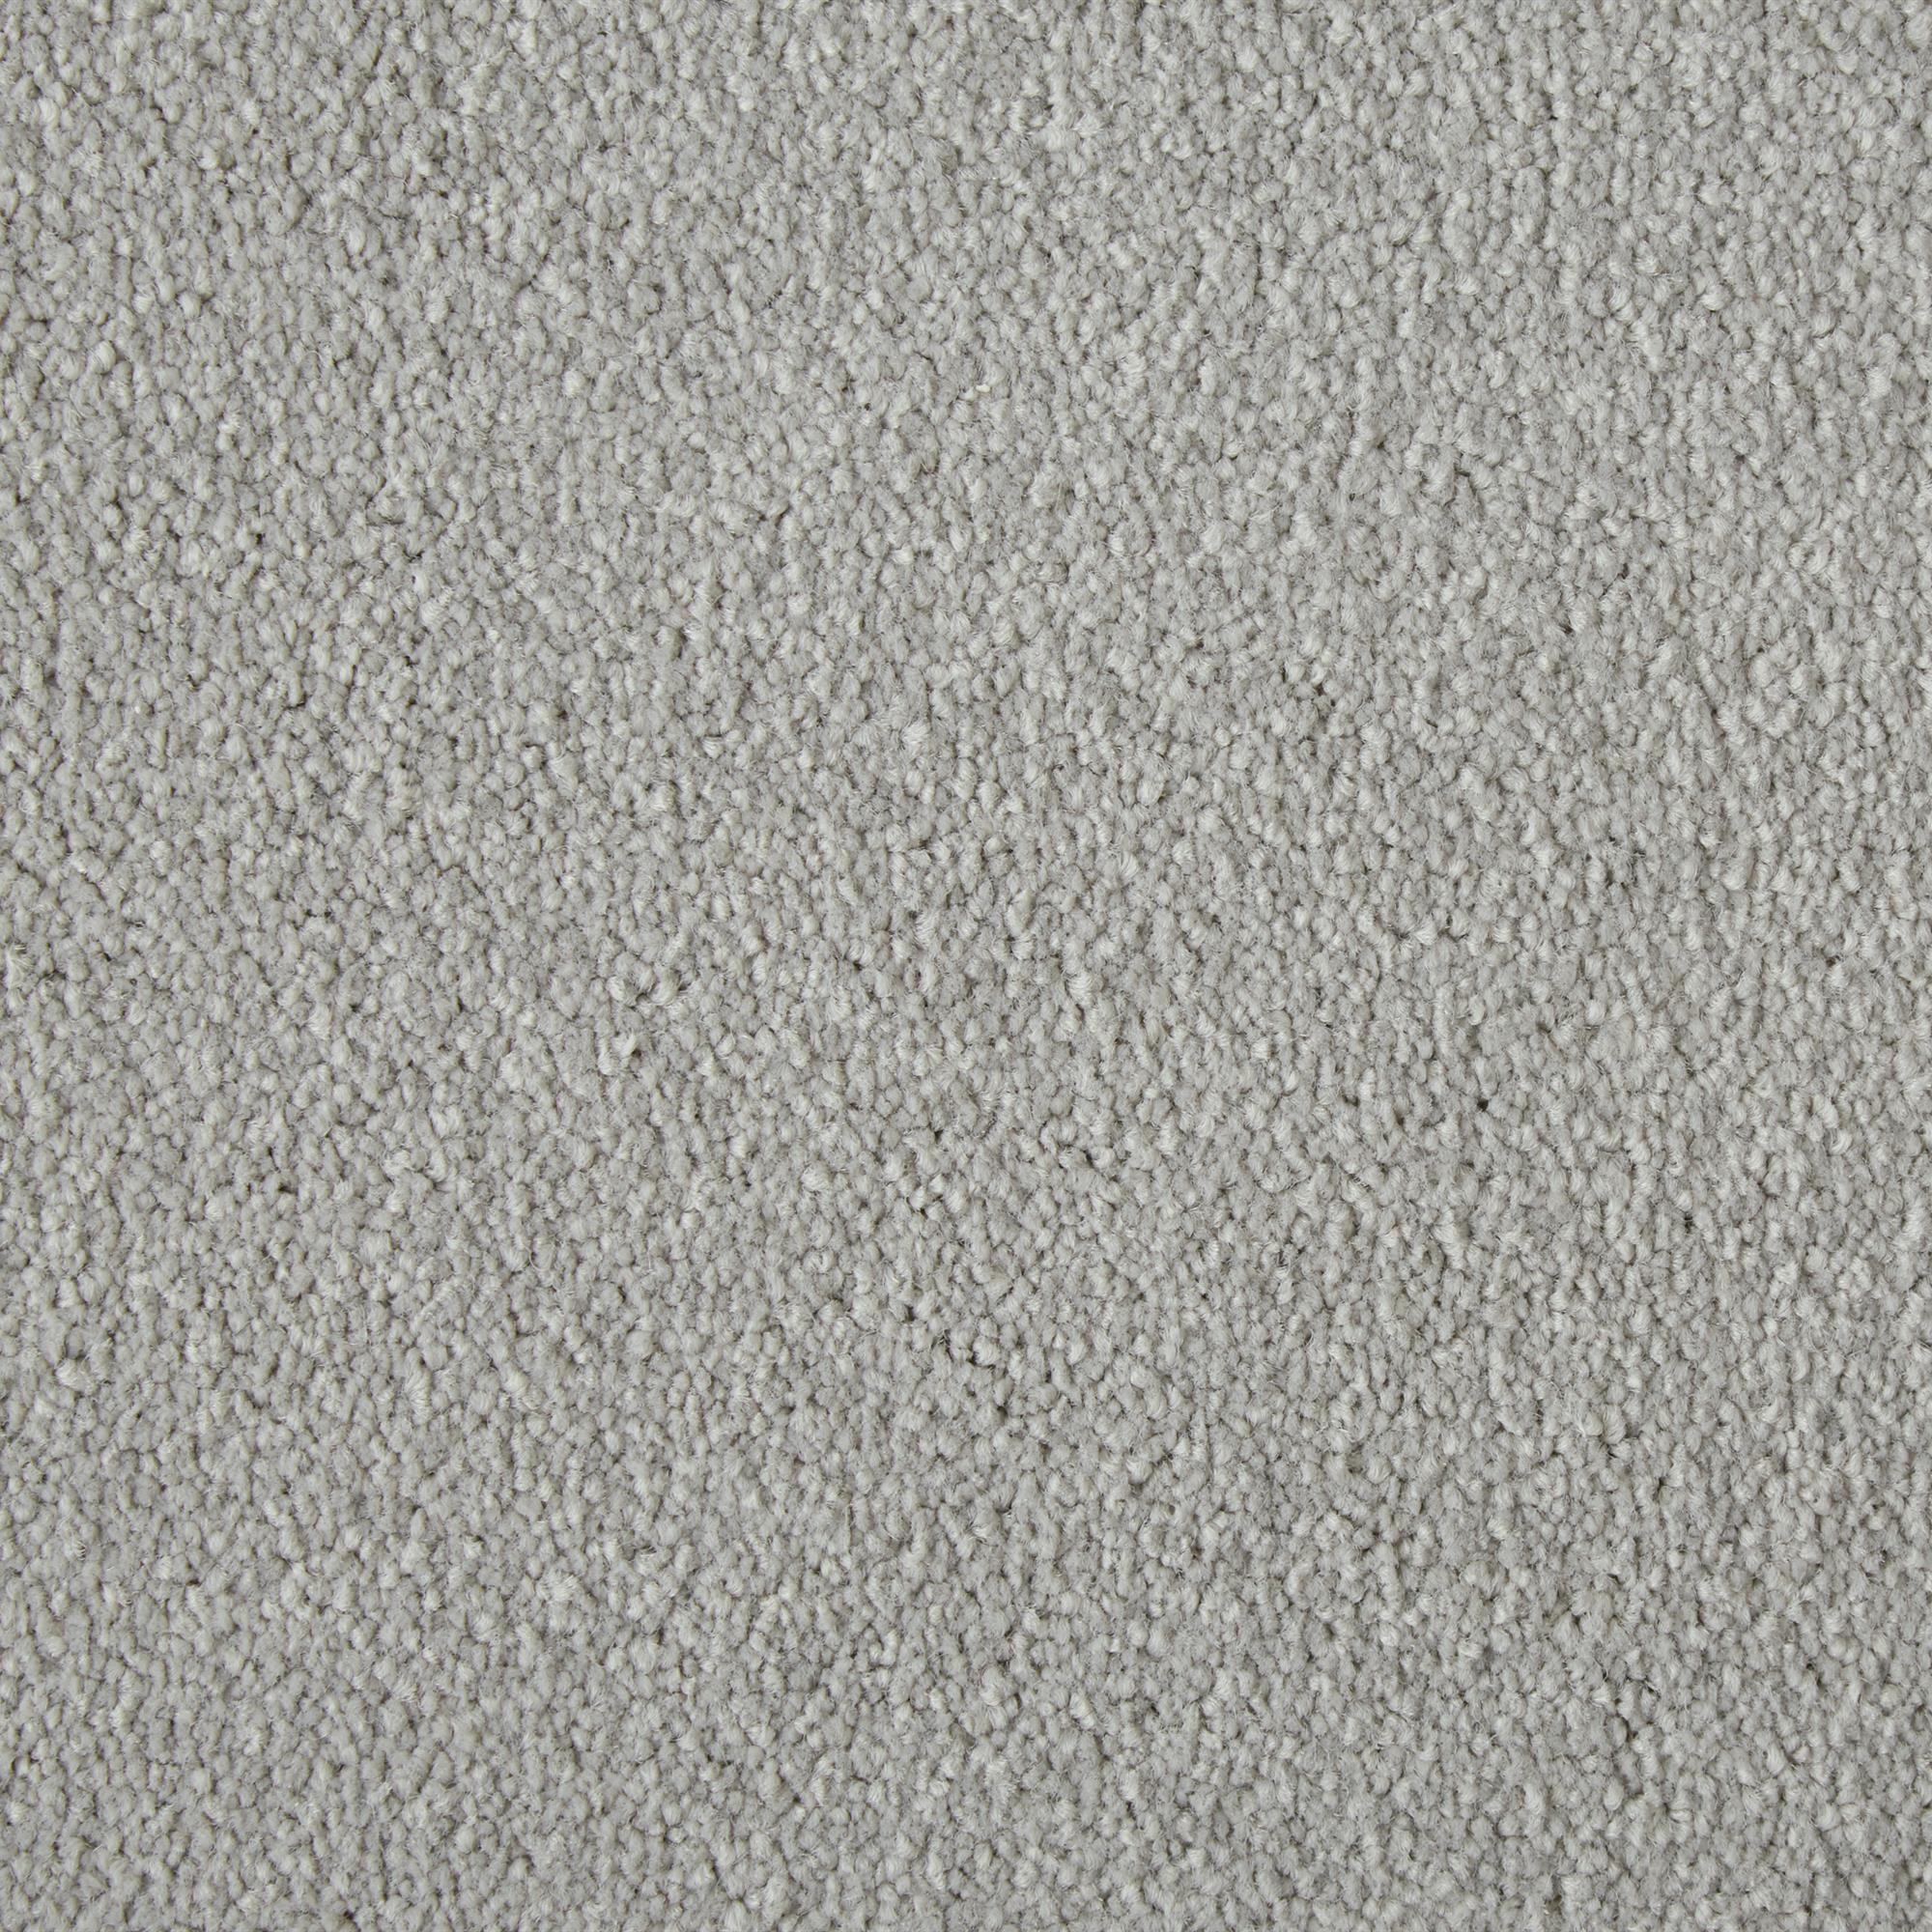 Signature Pentine Carpet, Pentine Freg4s French Grey, swatch